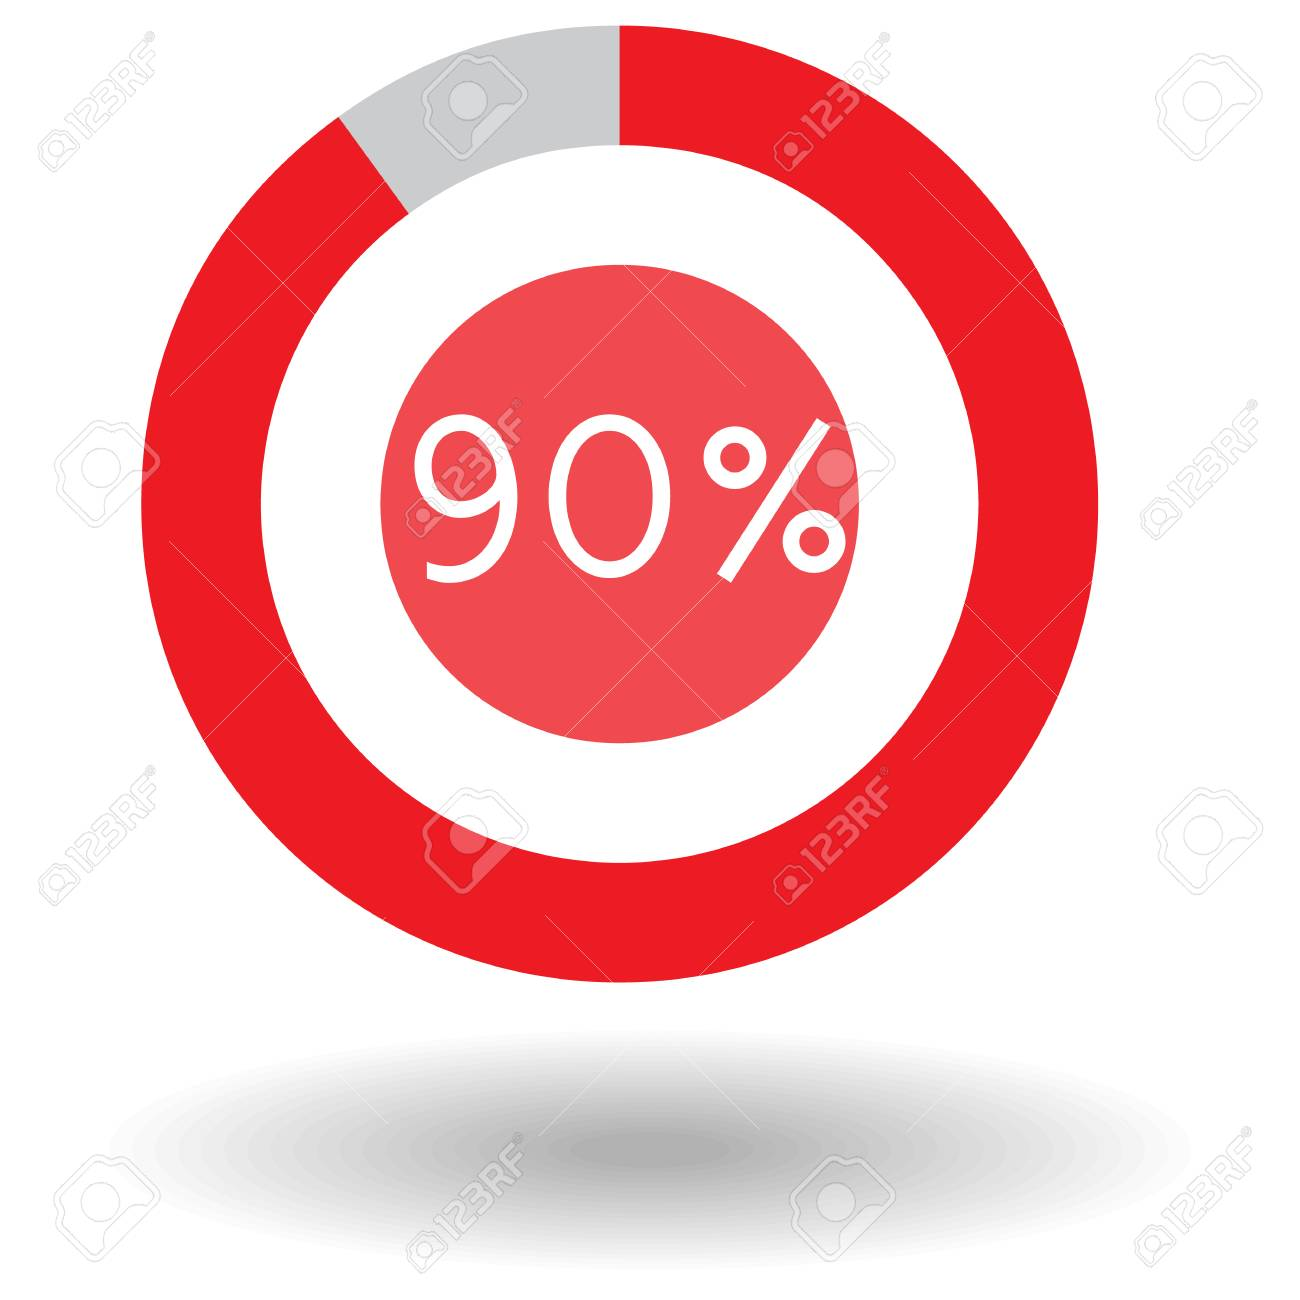 Icon Business Colorful Pie Chart Circle Graph 90 Red Vector